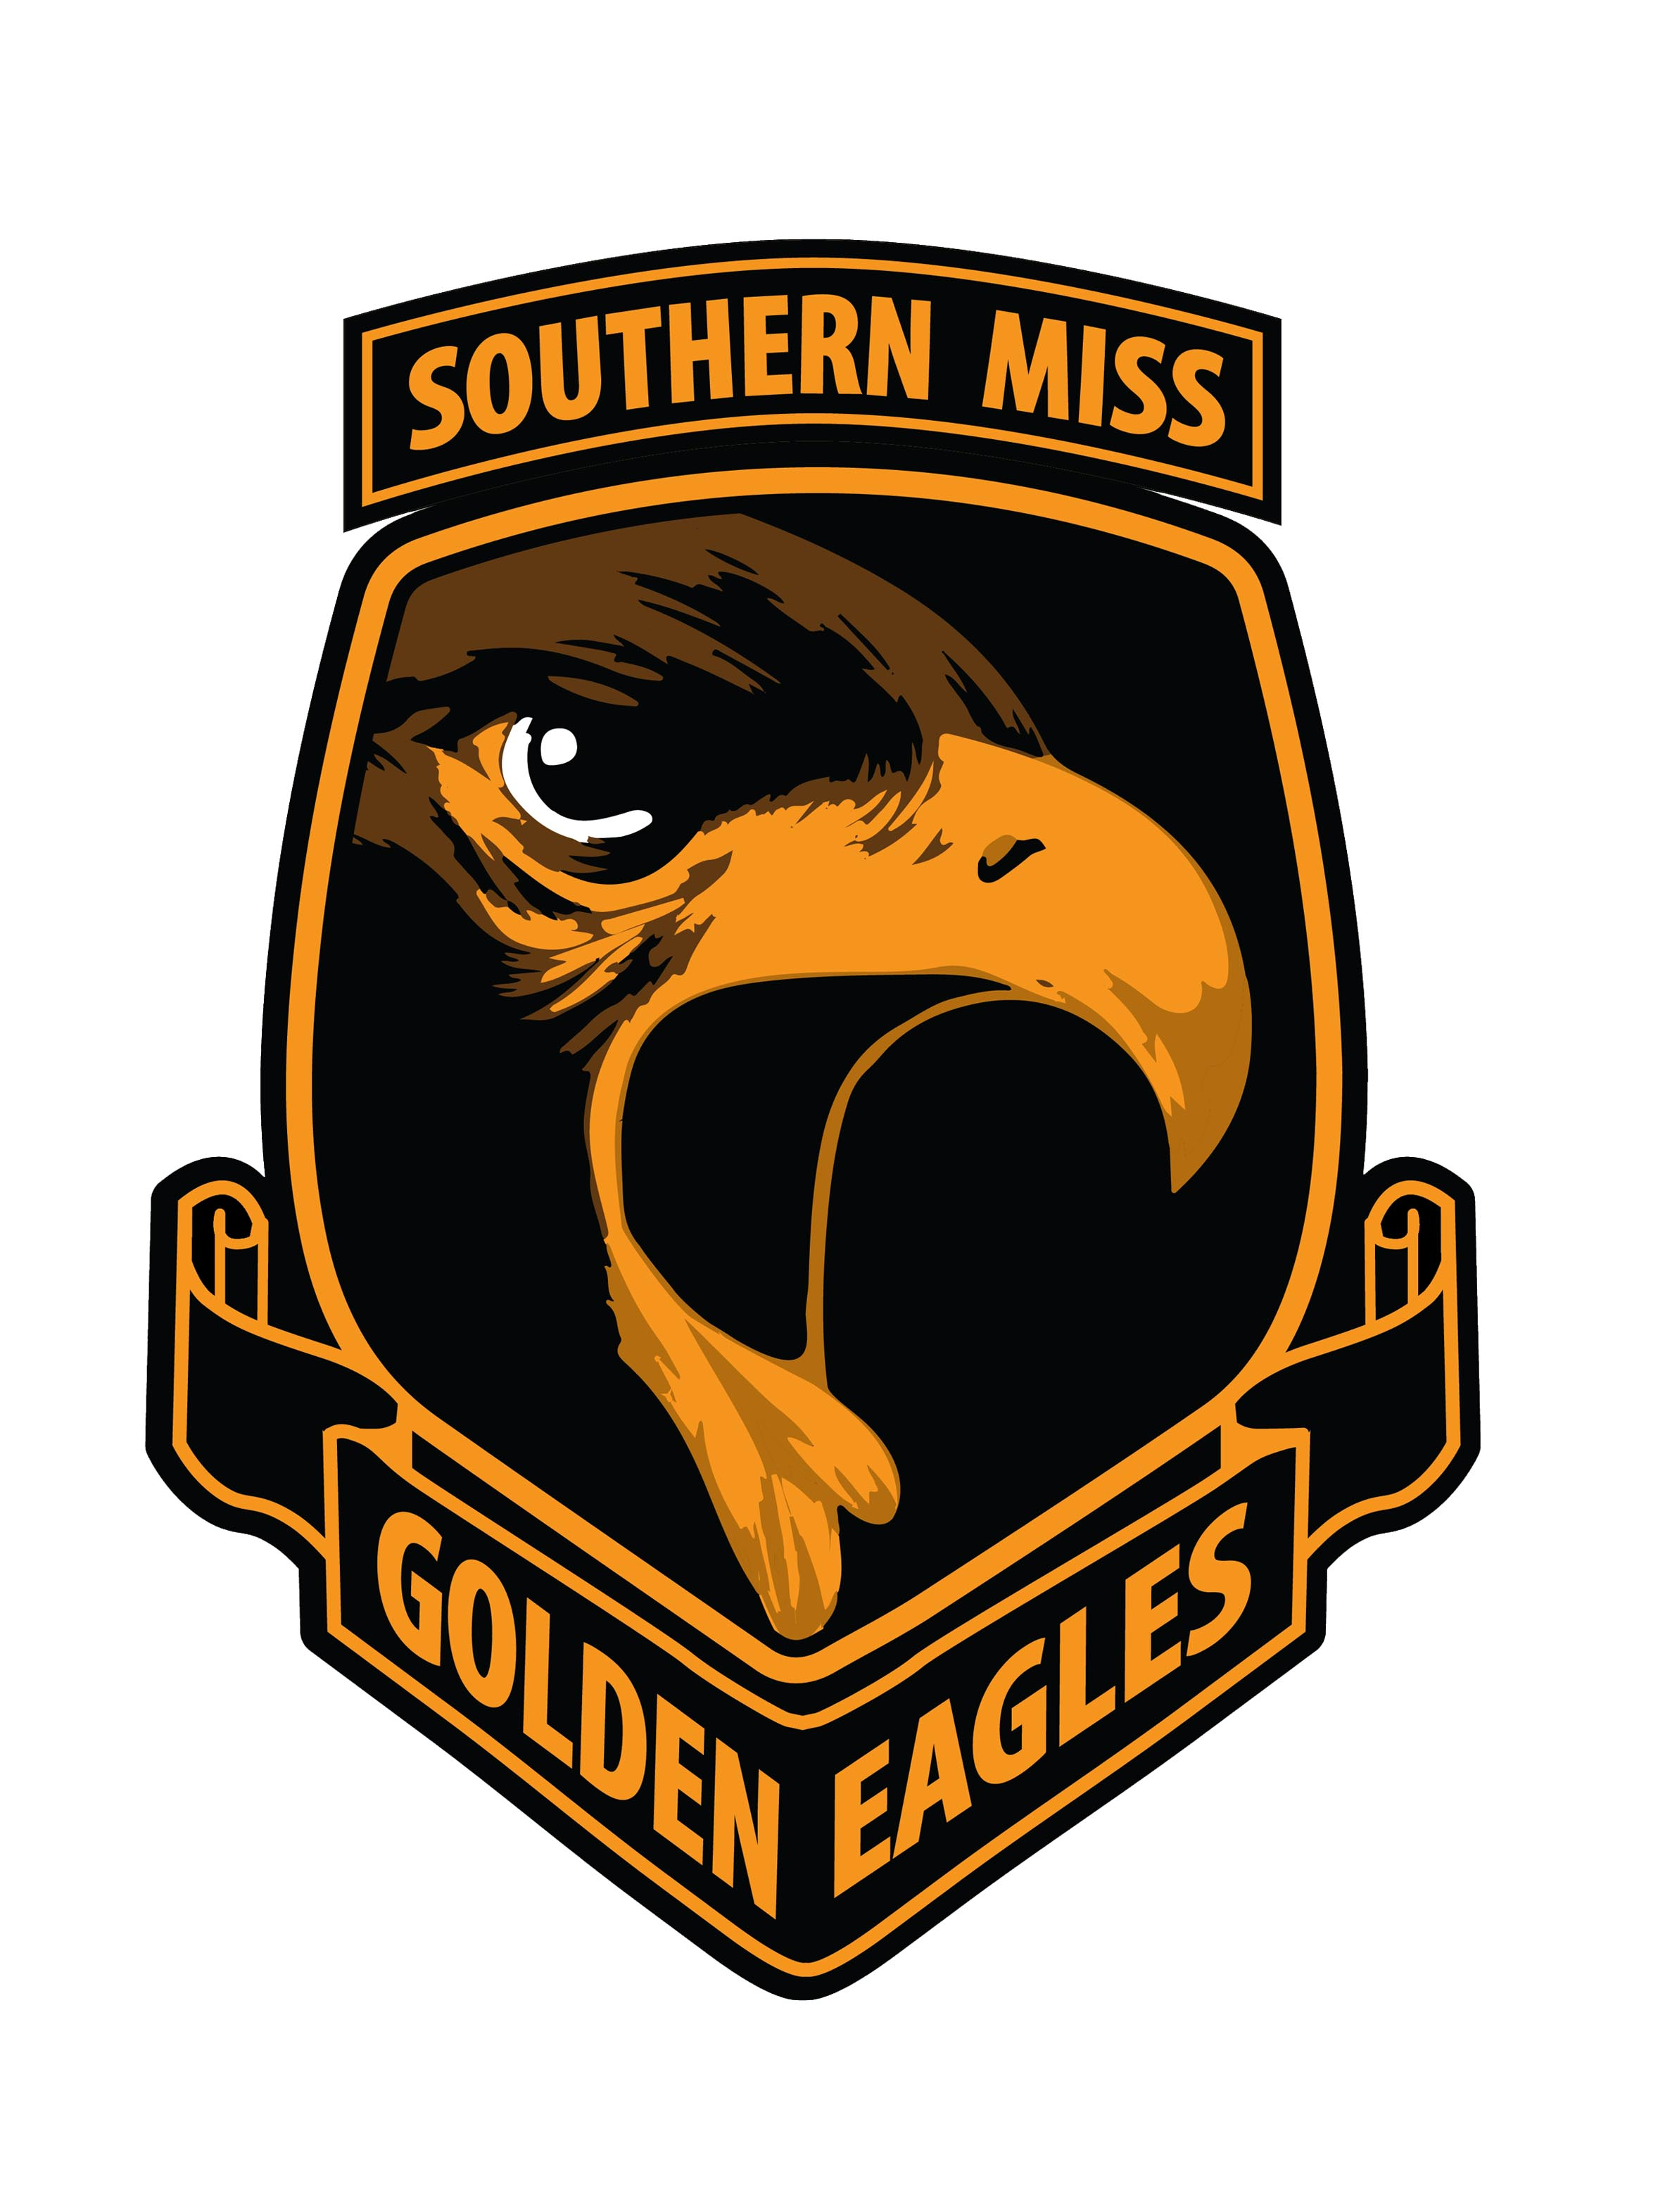 USM Army ROTC